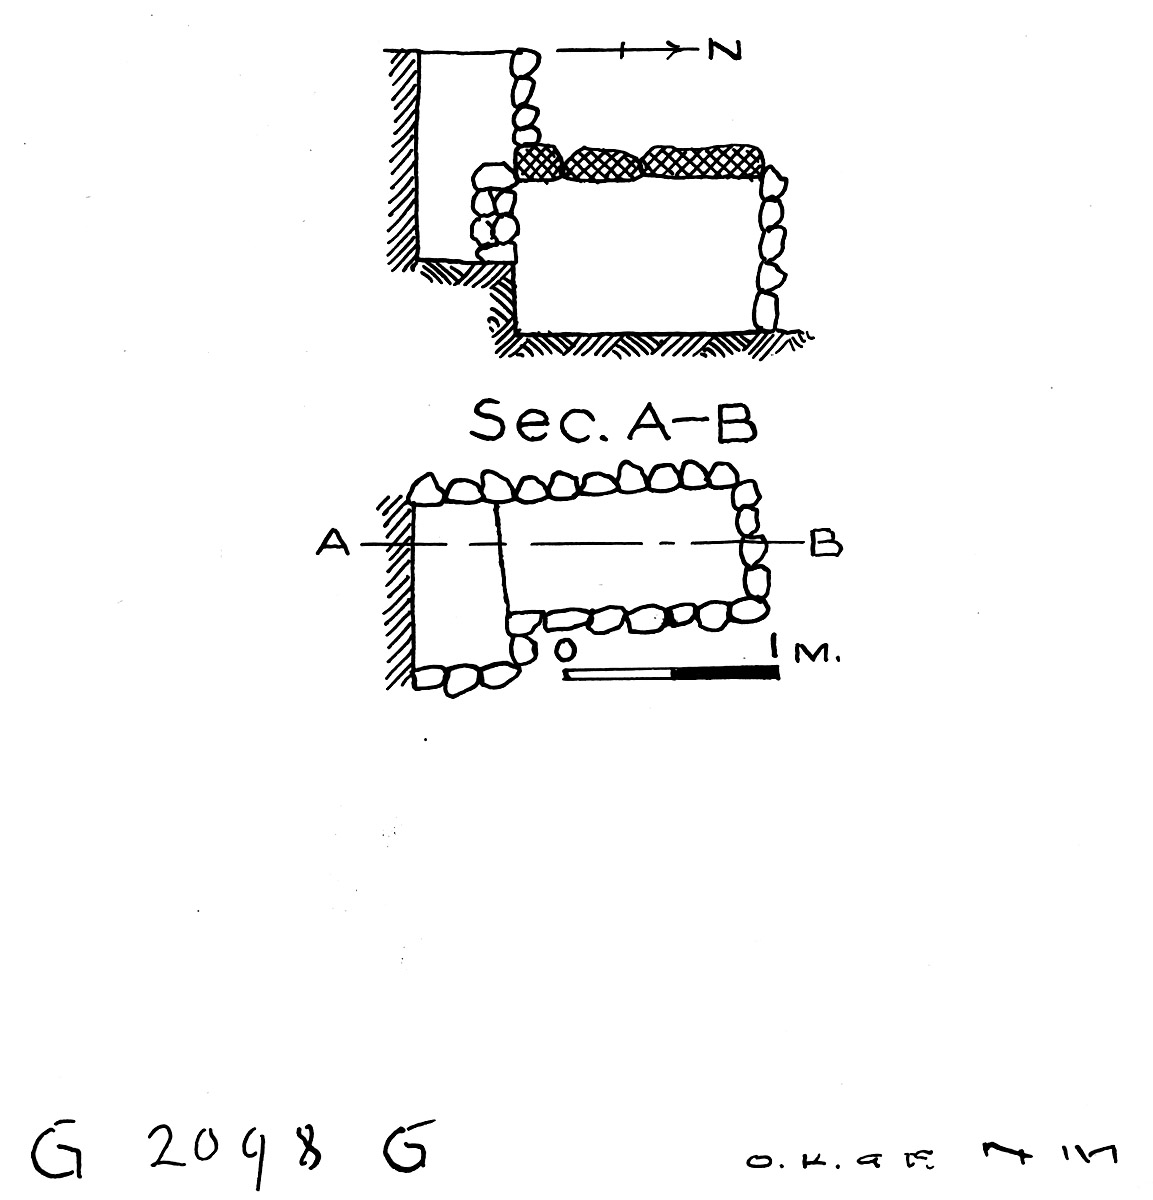 Maps and plans: G 2098, Shaft G